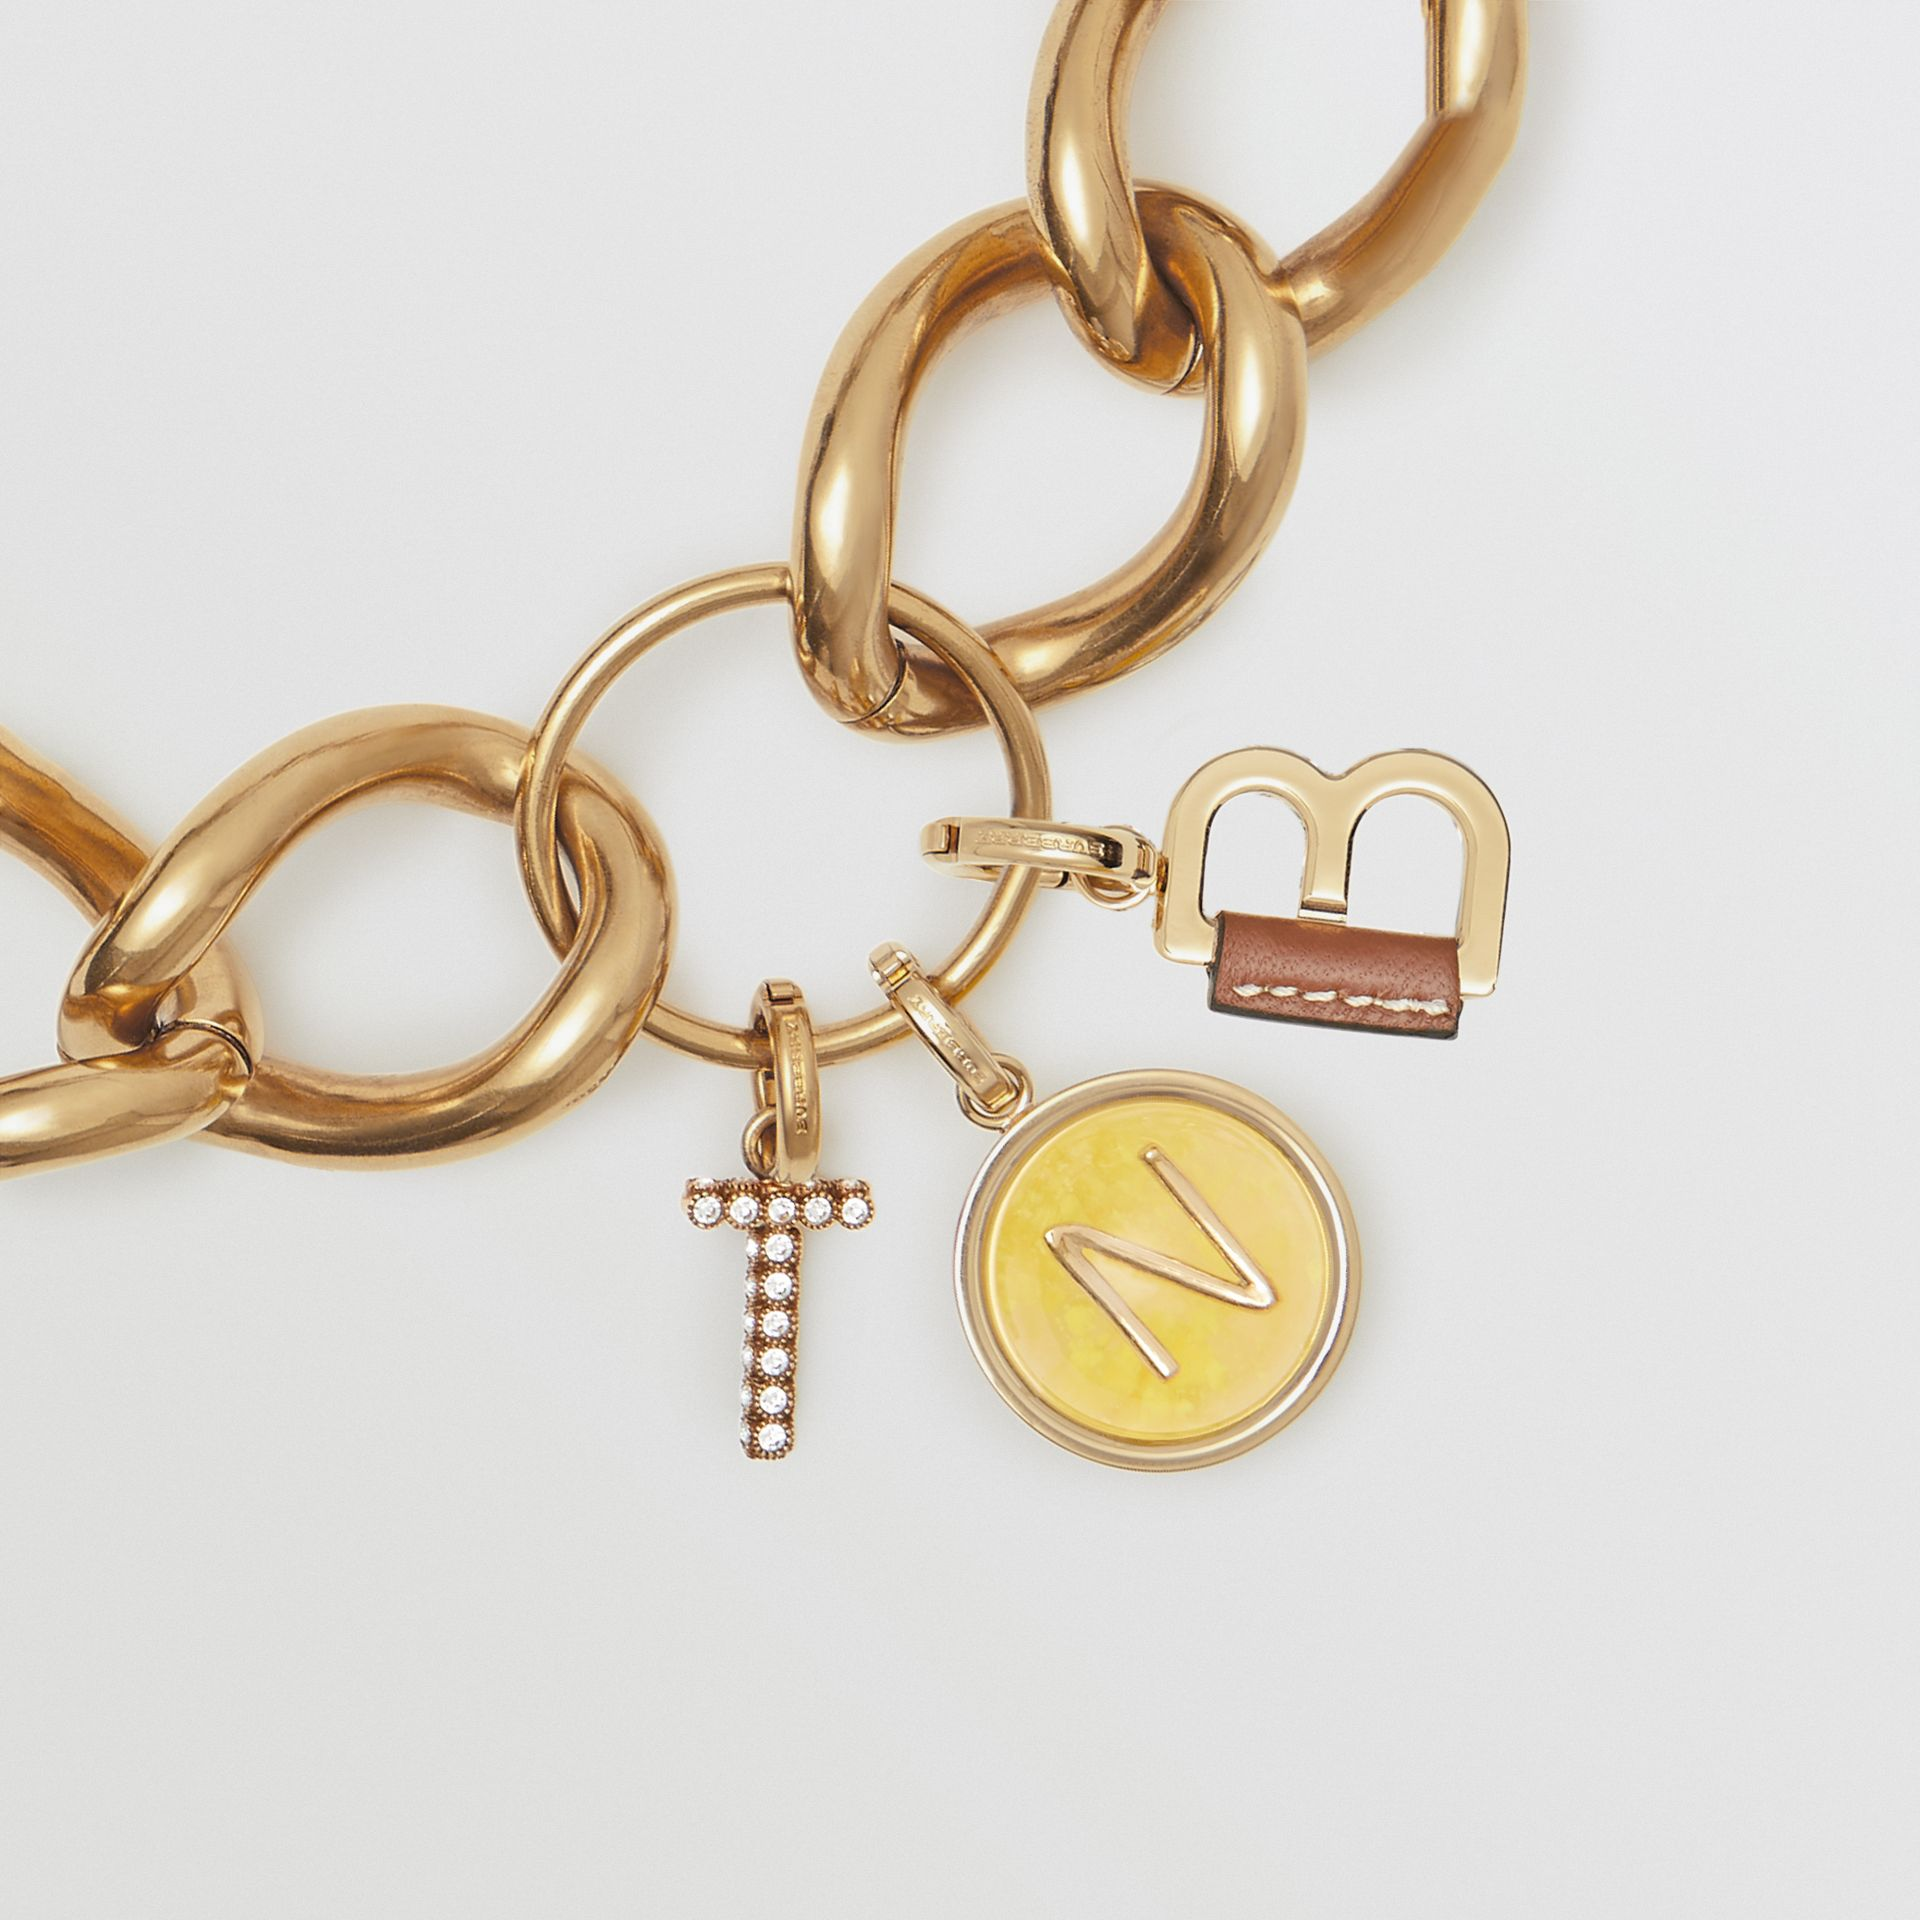 Marbled Resin 'N' Alphabet Charm in Gold/mimosa - Women | Burberry - gallery image 2